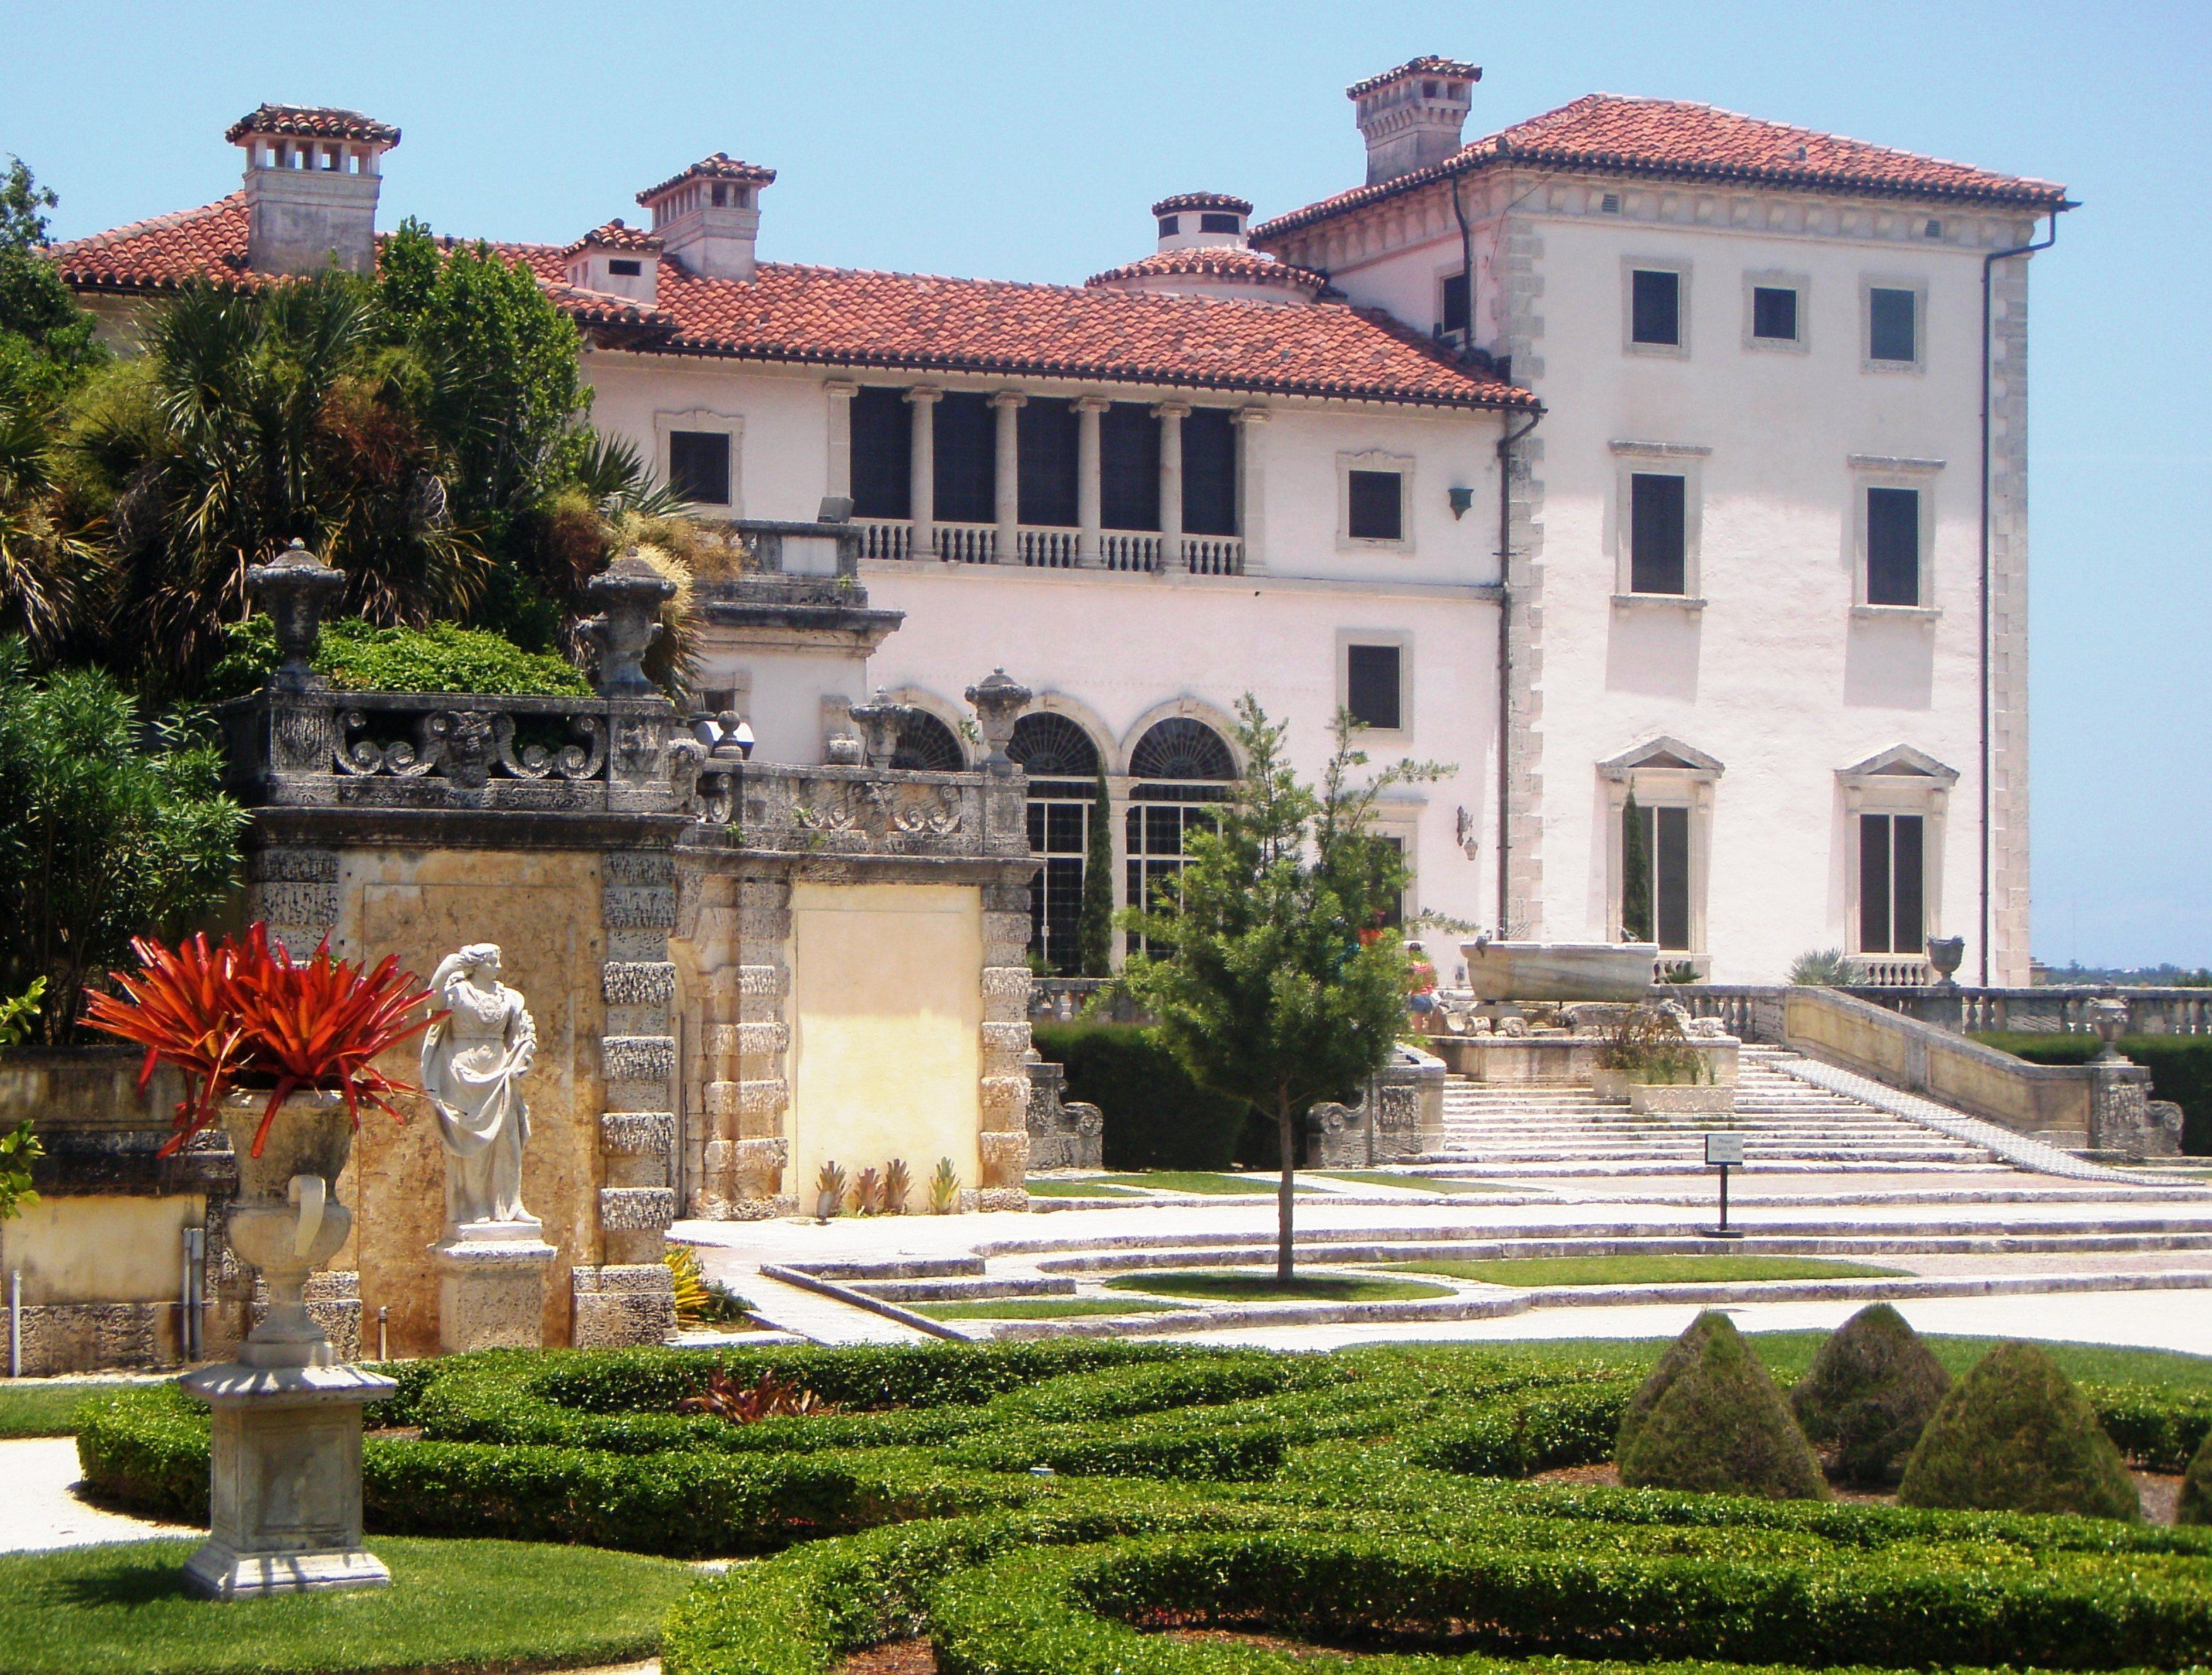 7deac8989d7312af27ac7ce37a1afe5d - Vizcaya Museum And Gardens Architectural Styles